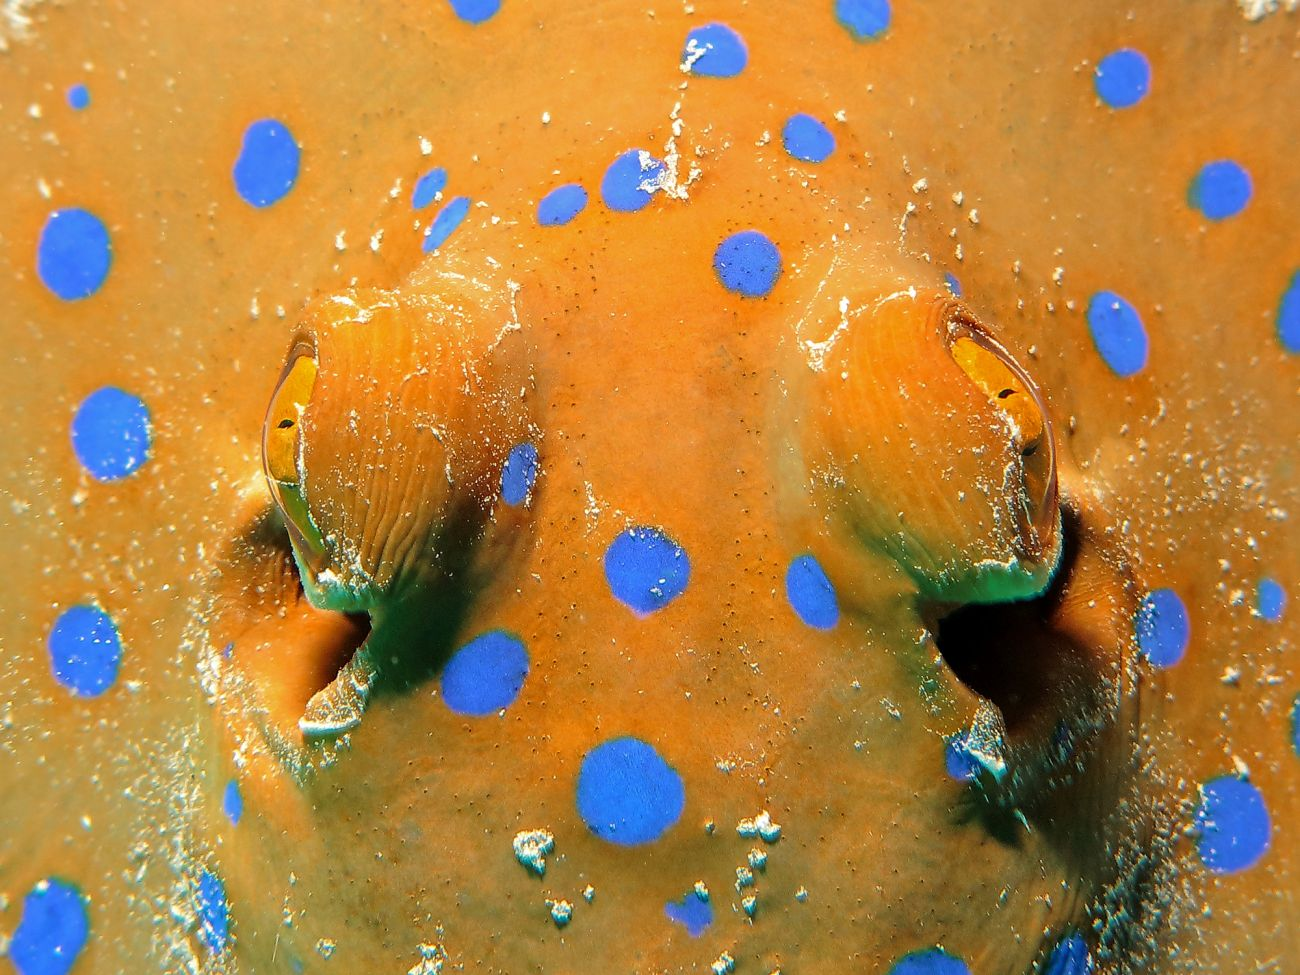 Image of Bluespotted Ribbontail Ray, Great Barrier Reef, QLD. Image credit SWB Photography